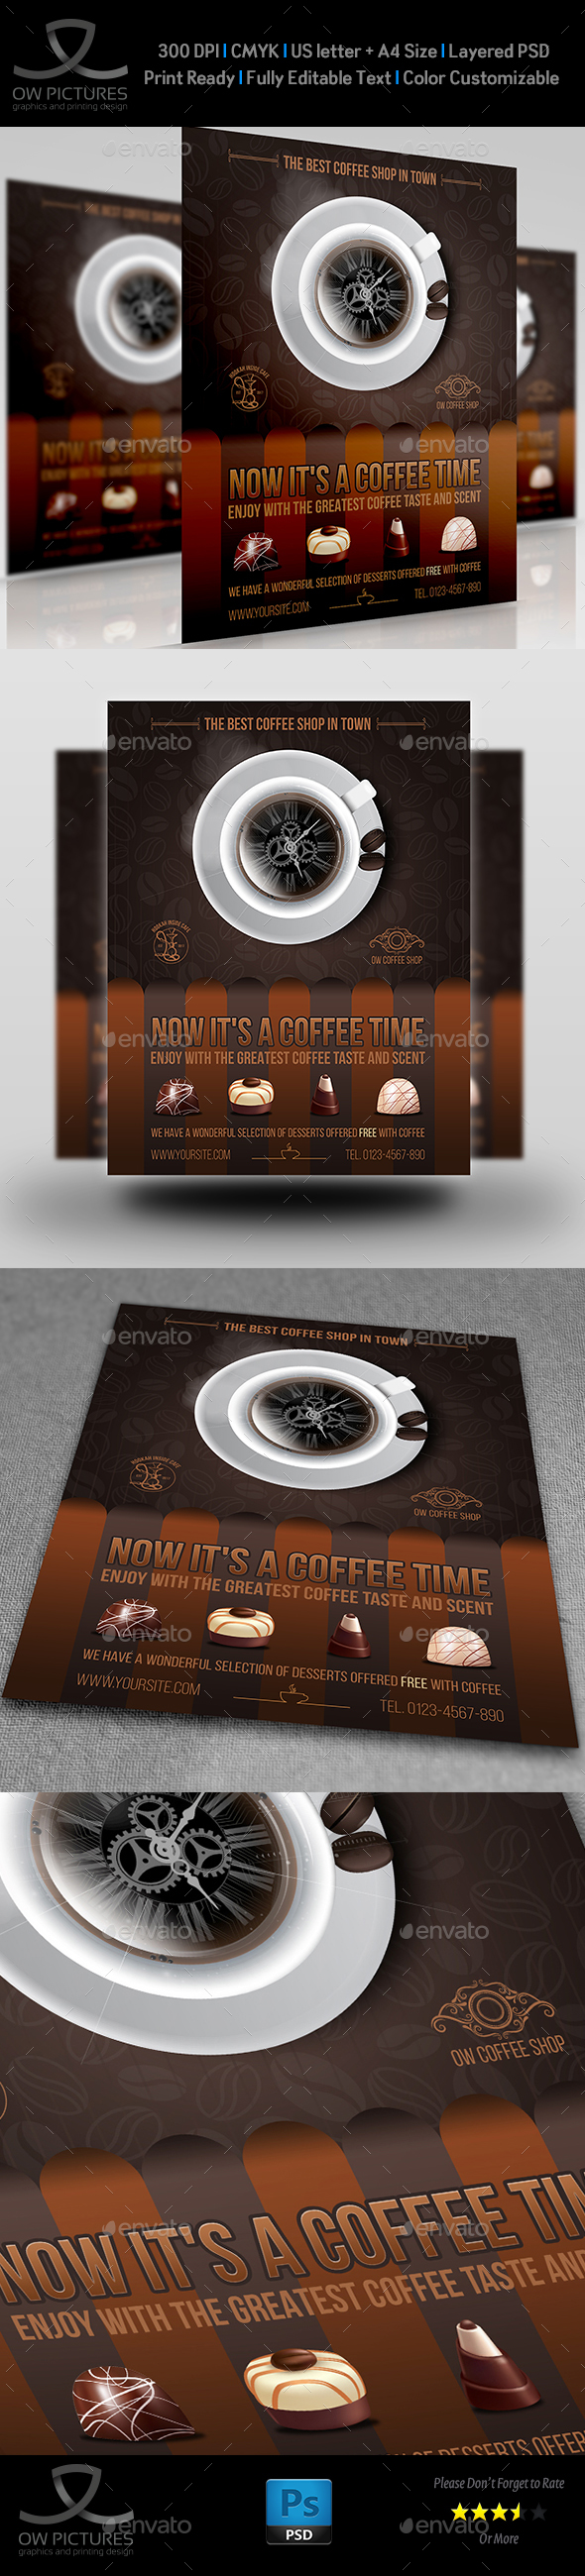 Cafe - Coffee Shop Flyer Template Vol.6 - Flyers Print Templates